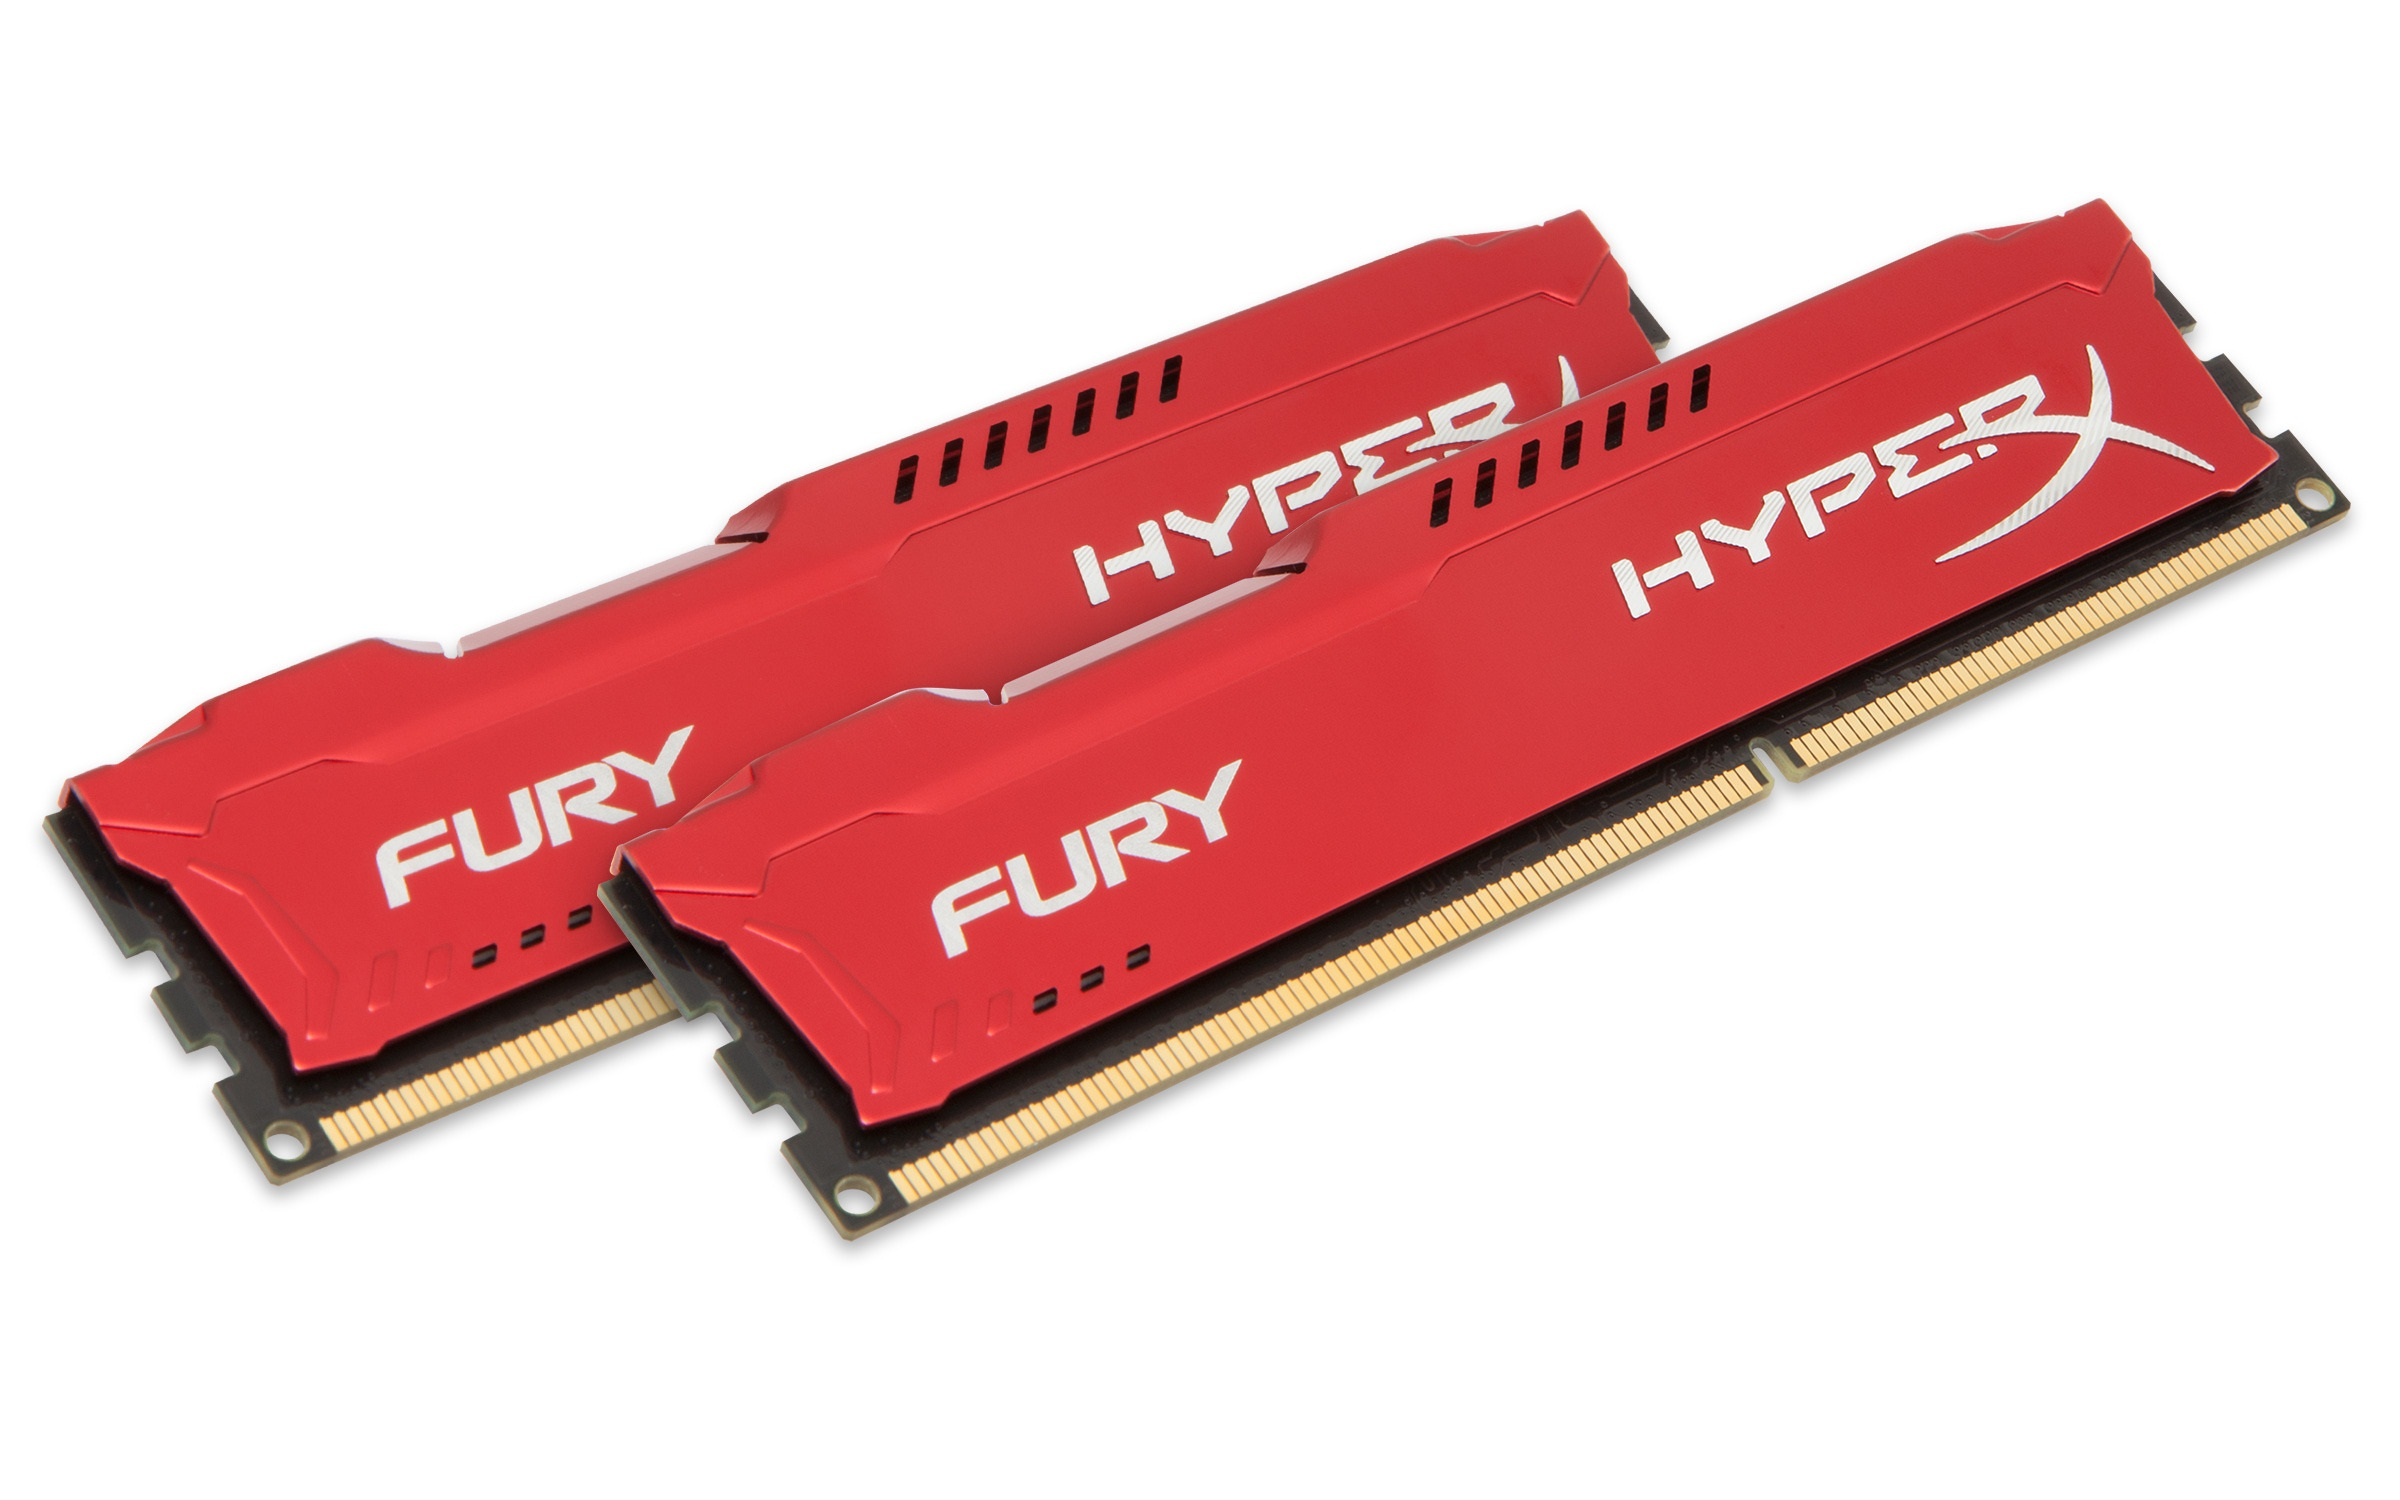 8GB DDR3-1866MHz Kingston HyperX Fury Red, 2x4GB